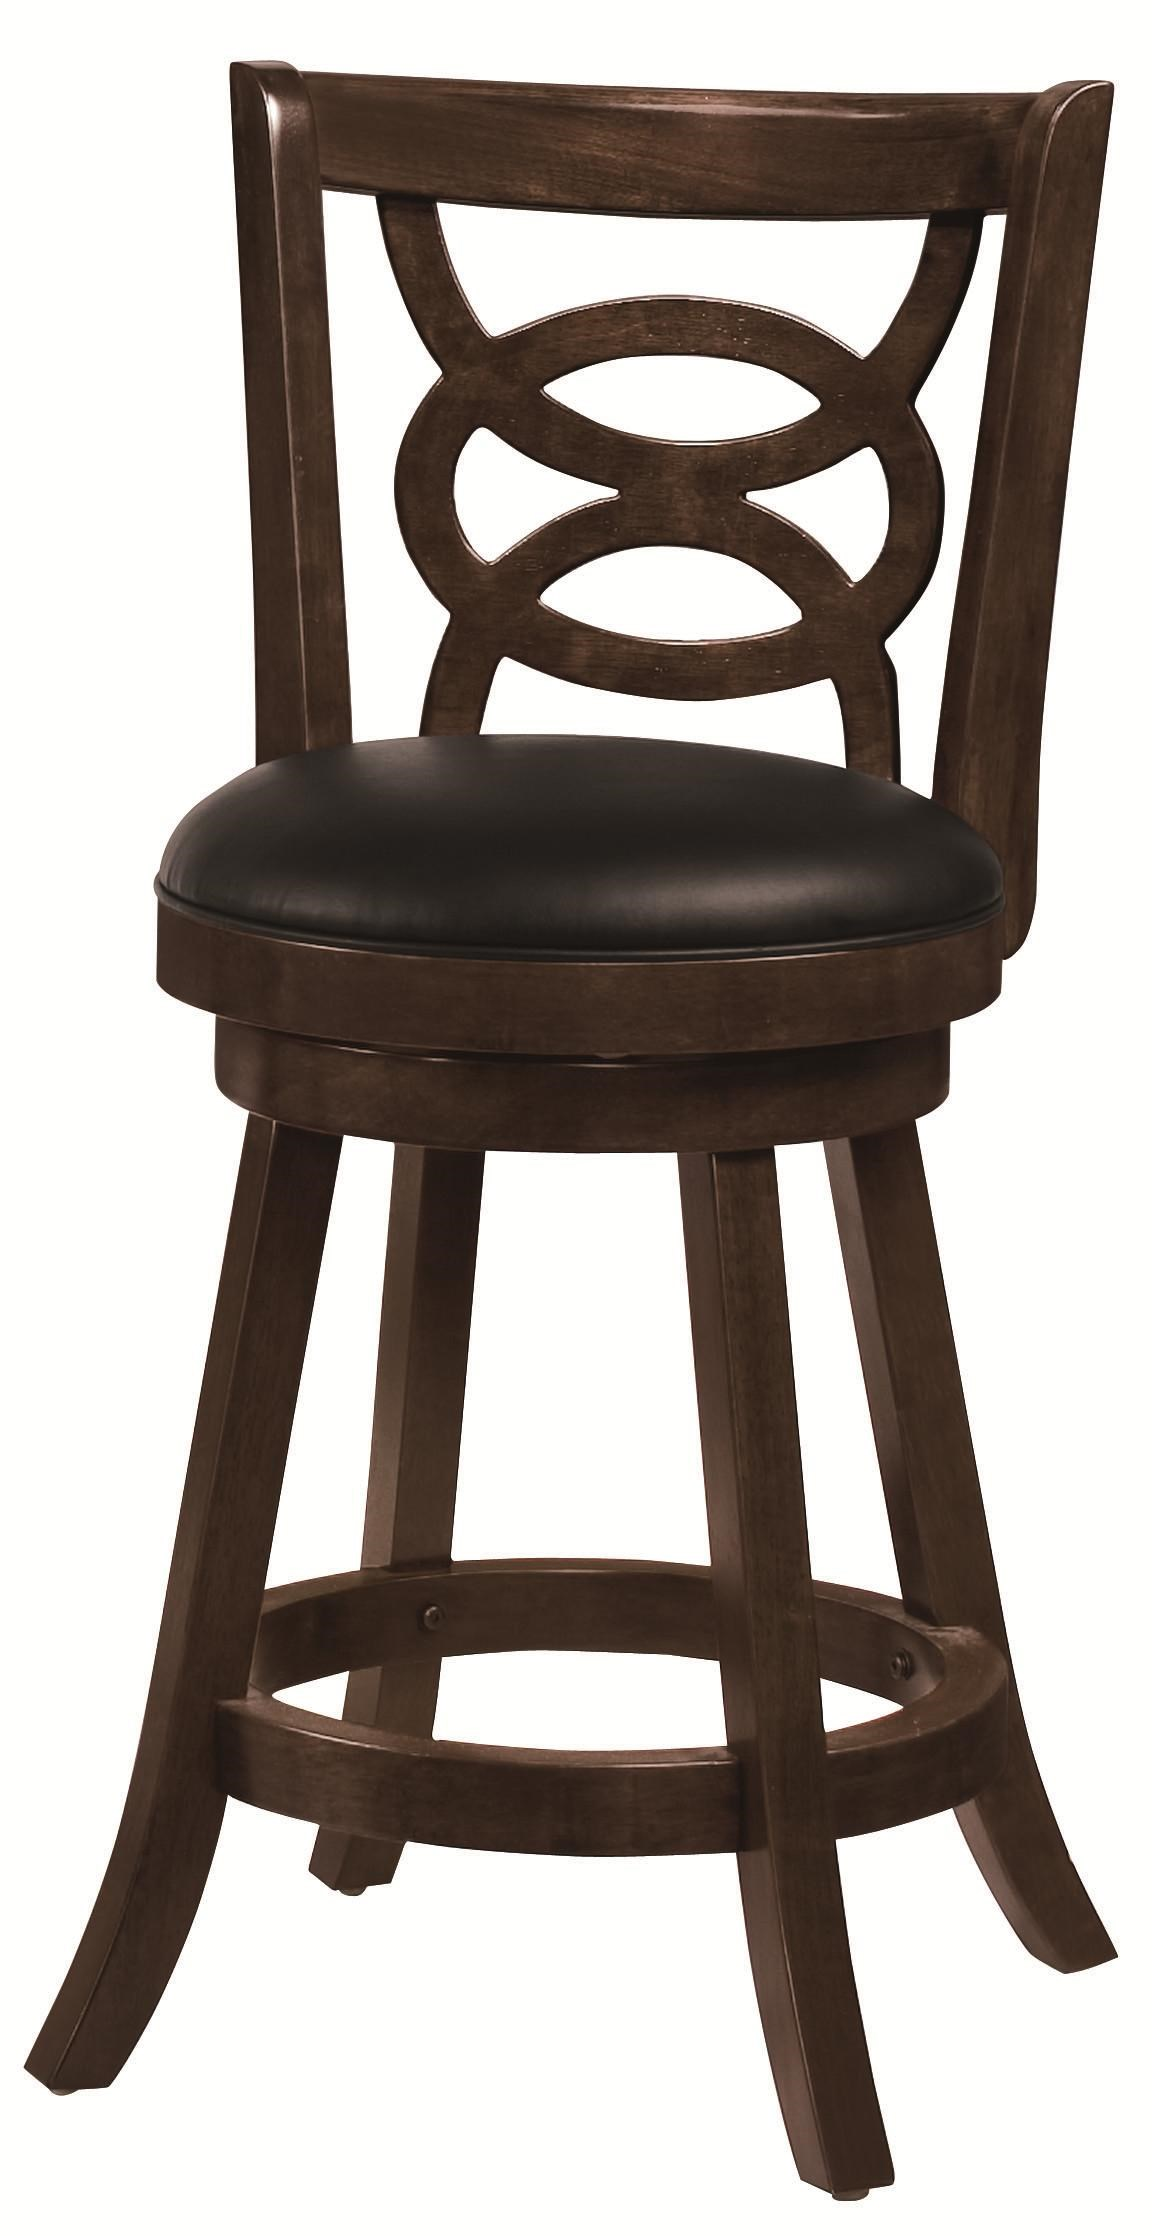 Coaster Dining Chairs And Bar Stools24 ...